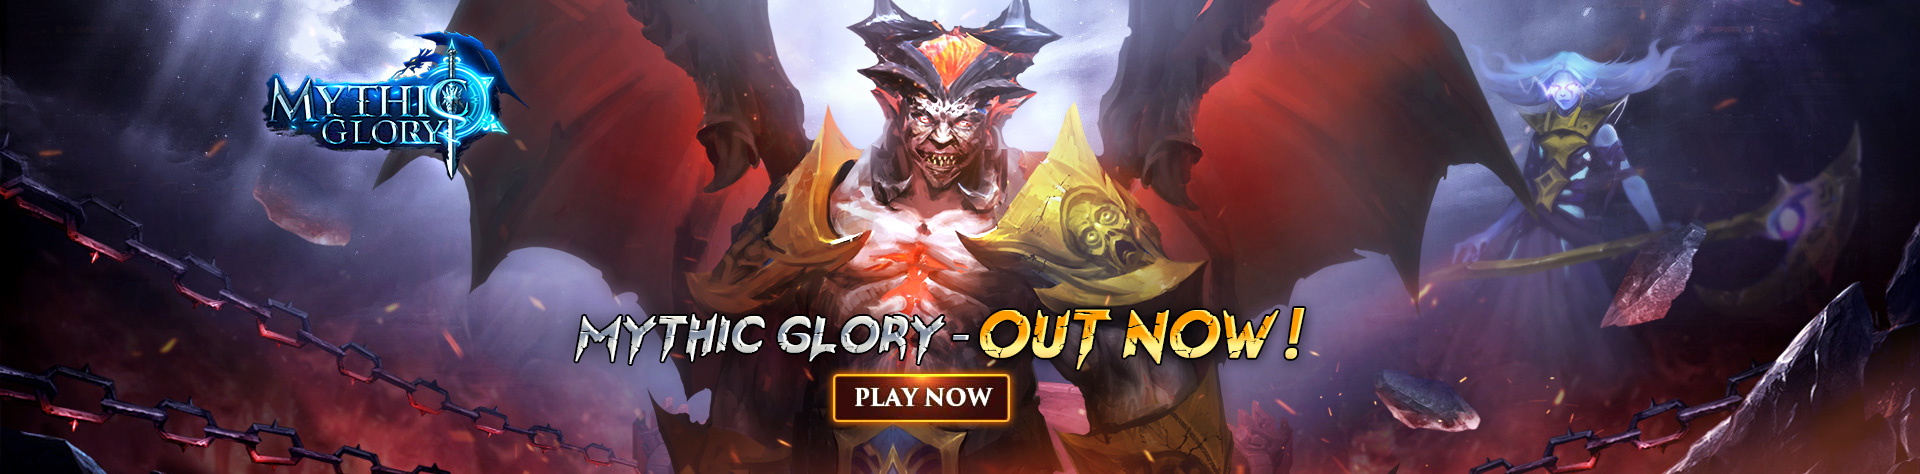 play free online games mmorpg browser games r2games